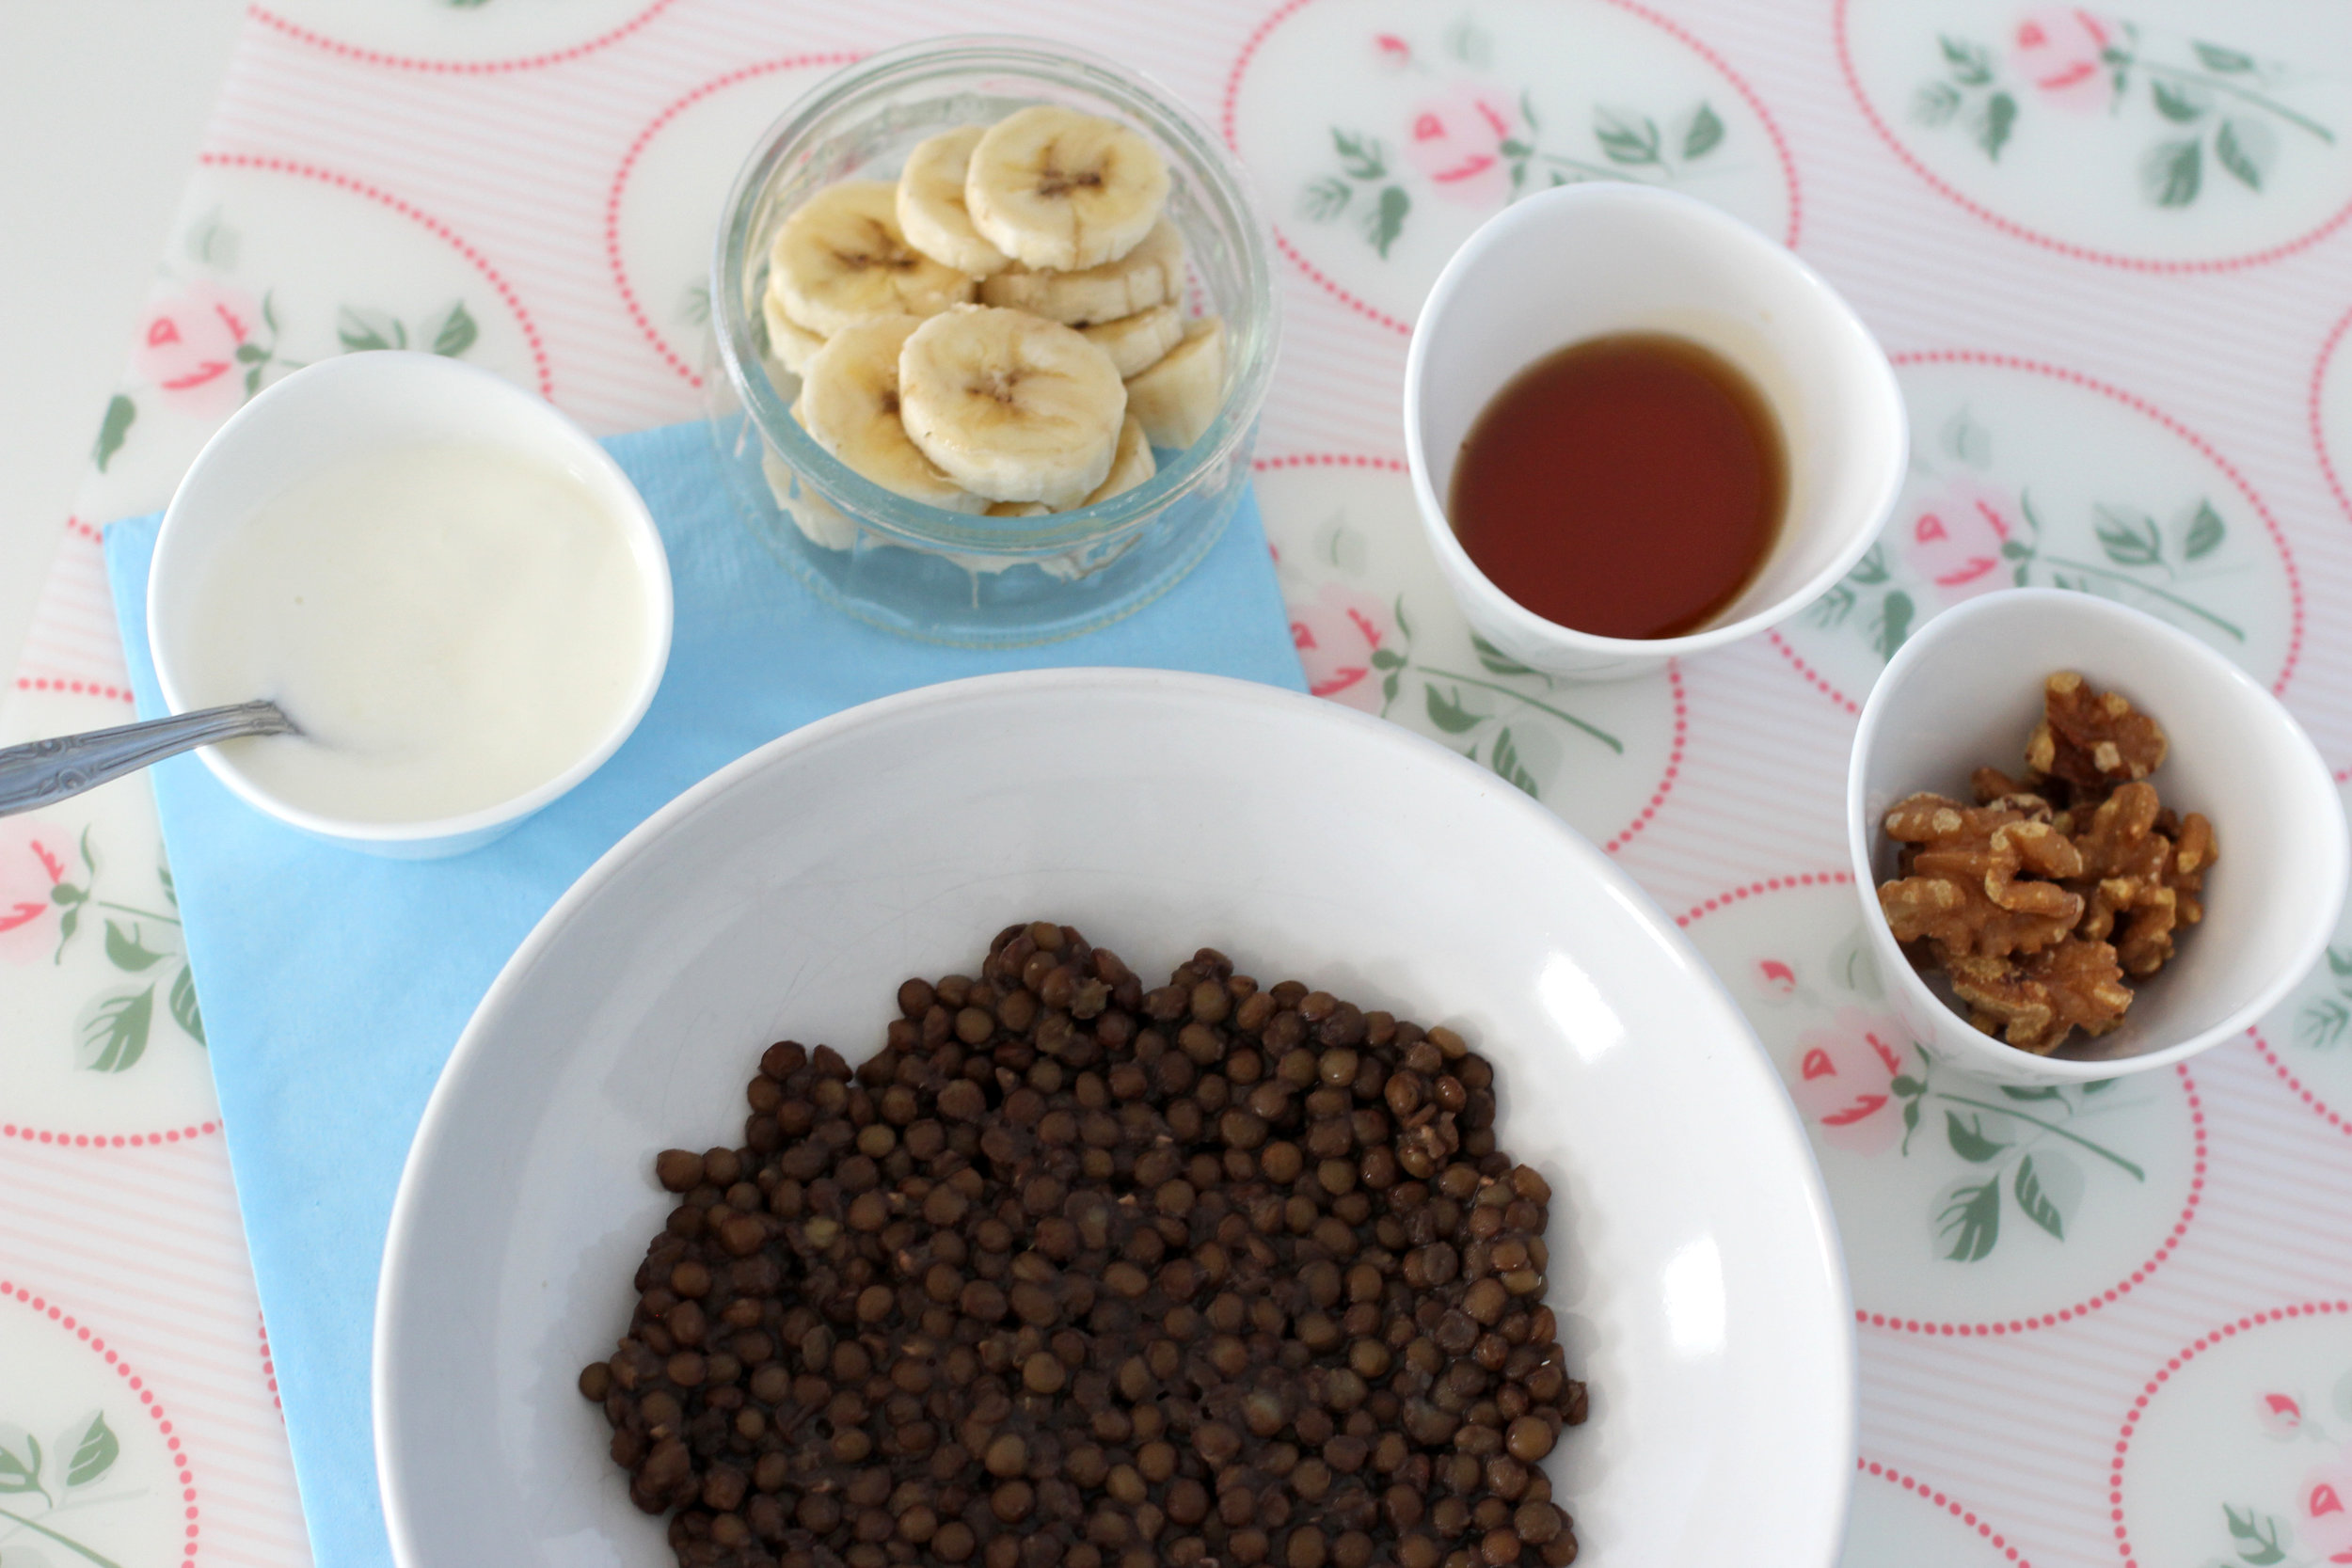 maple banana nut breakfast lentils recipe ingredients.jpg